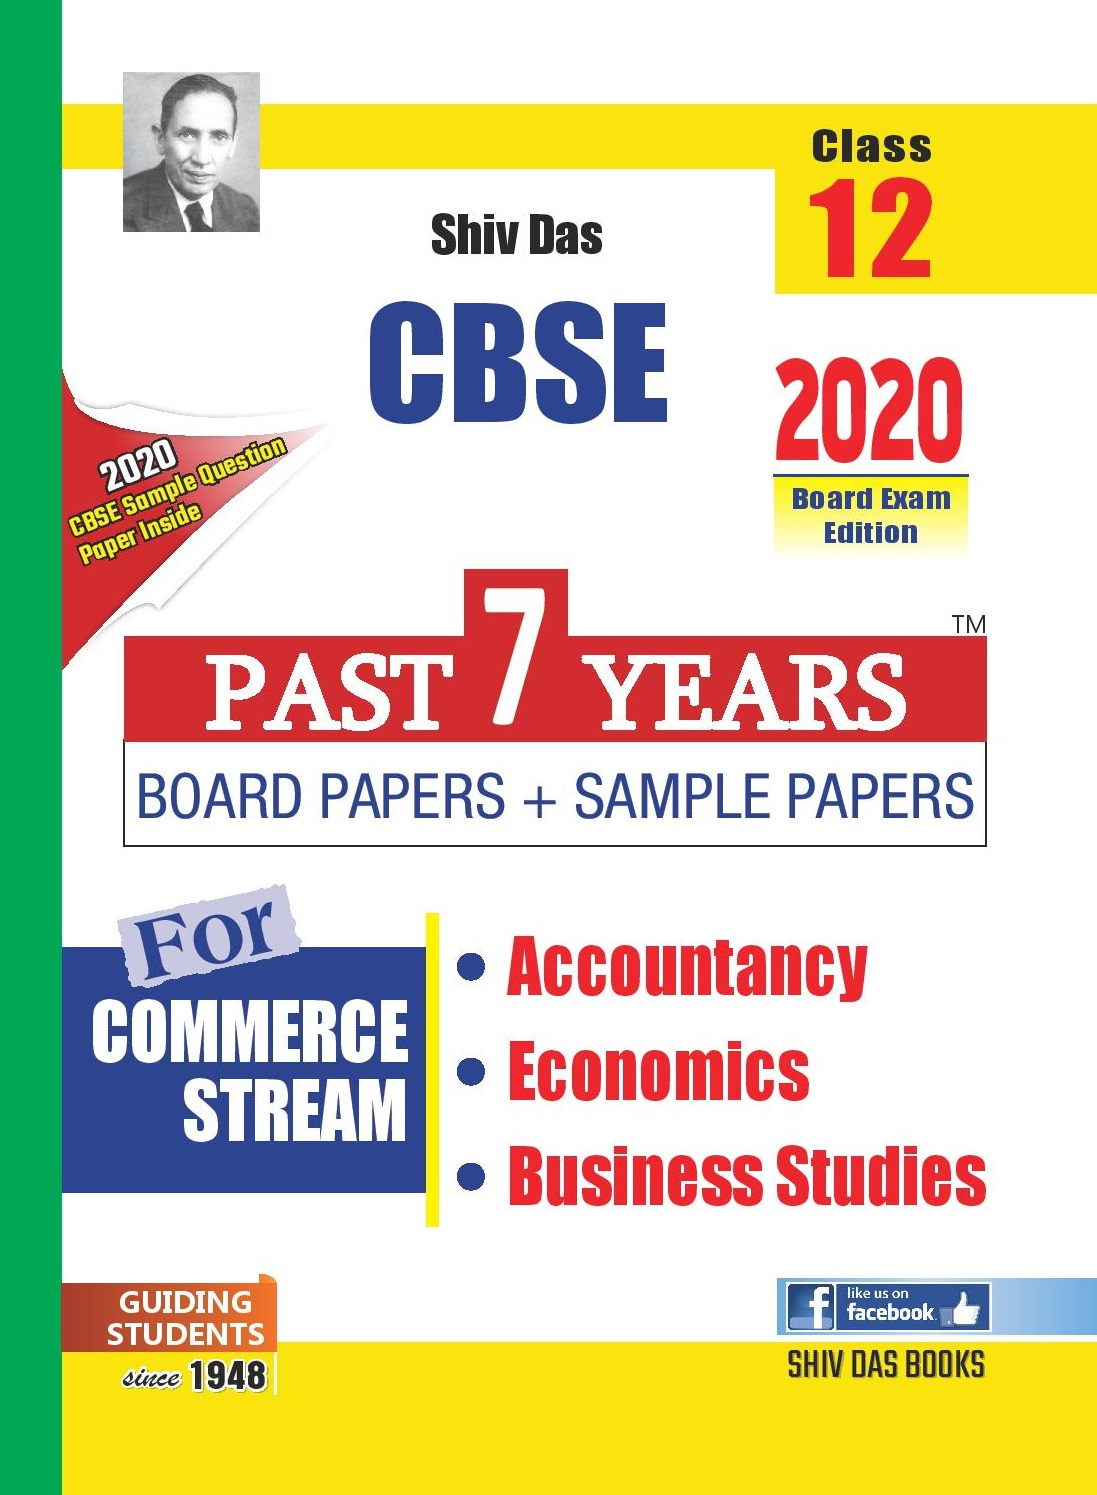 CBSE Past 7 Years Board Papers and Sample Papers Commerce Stream Combo : Accountancy, Economics, Business Studies for Class 12 (2020 Board Exam Edition)